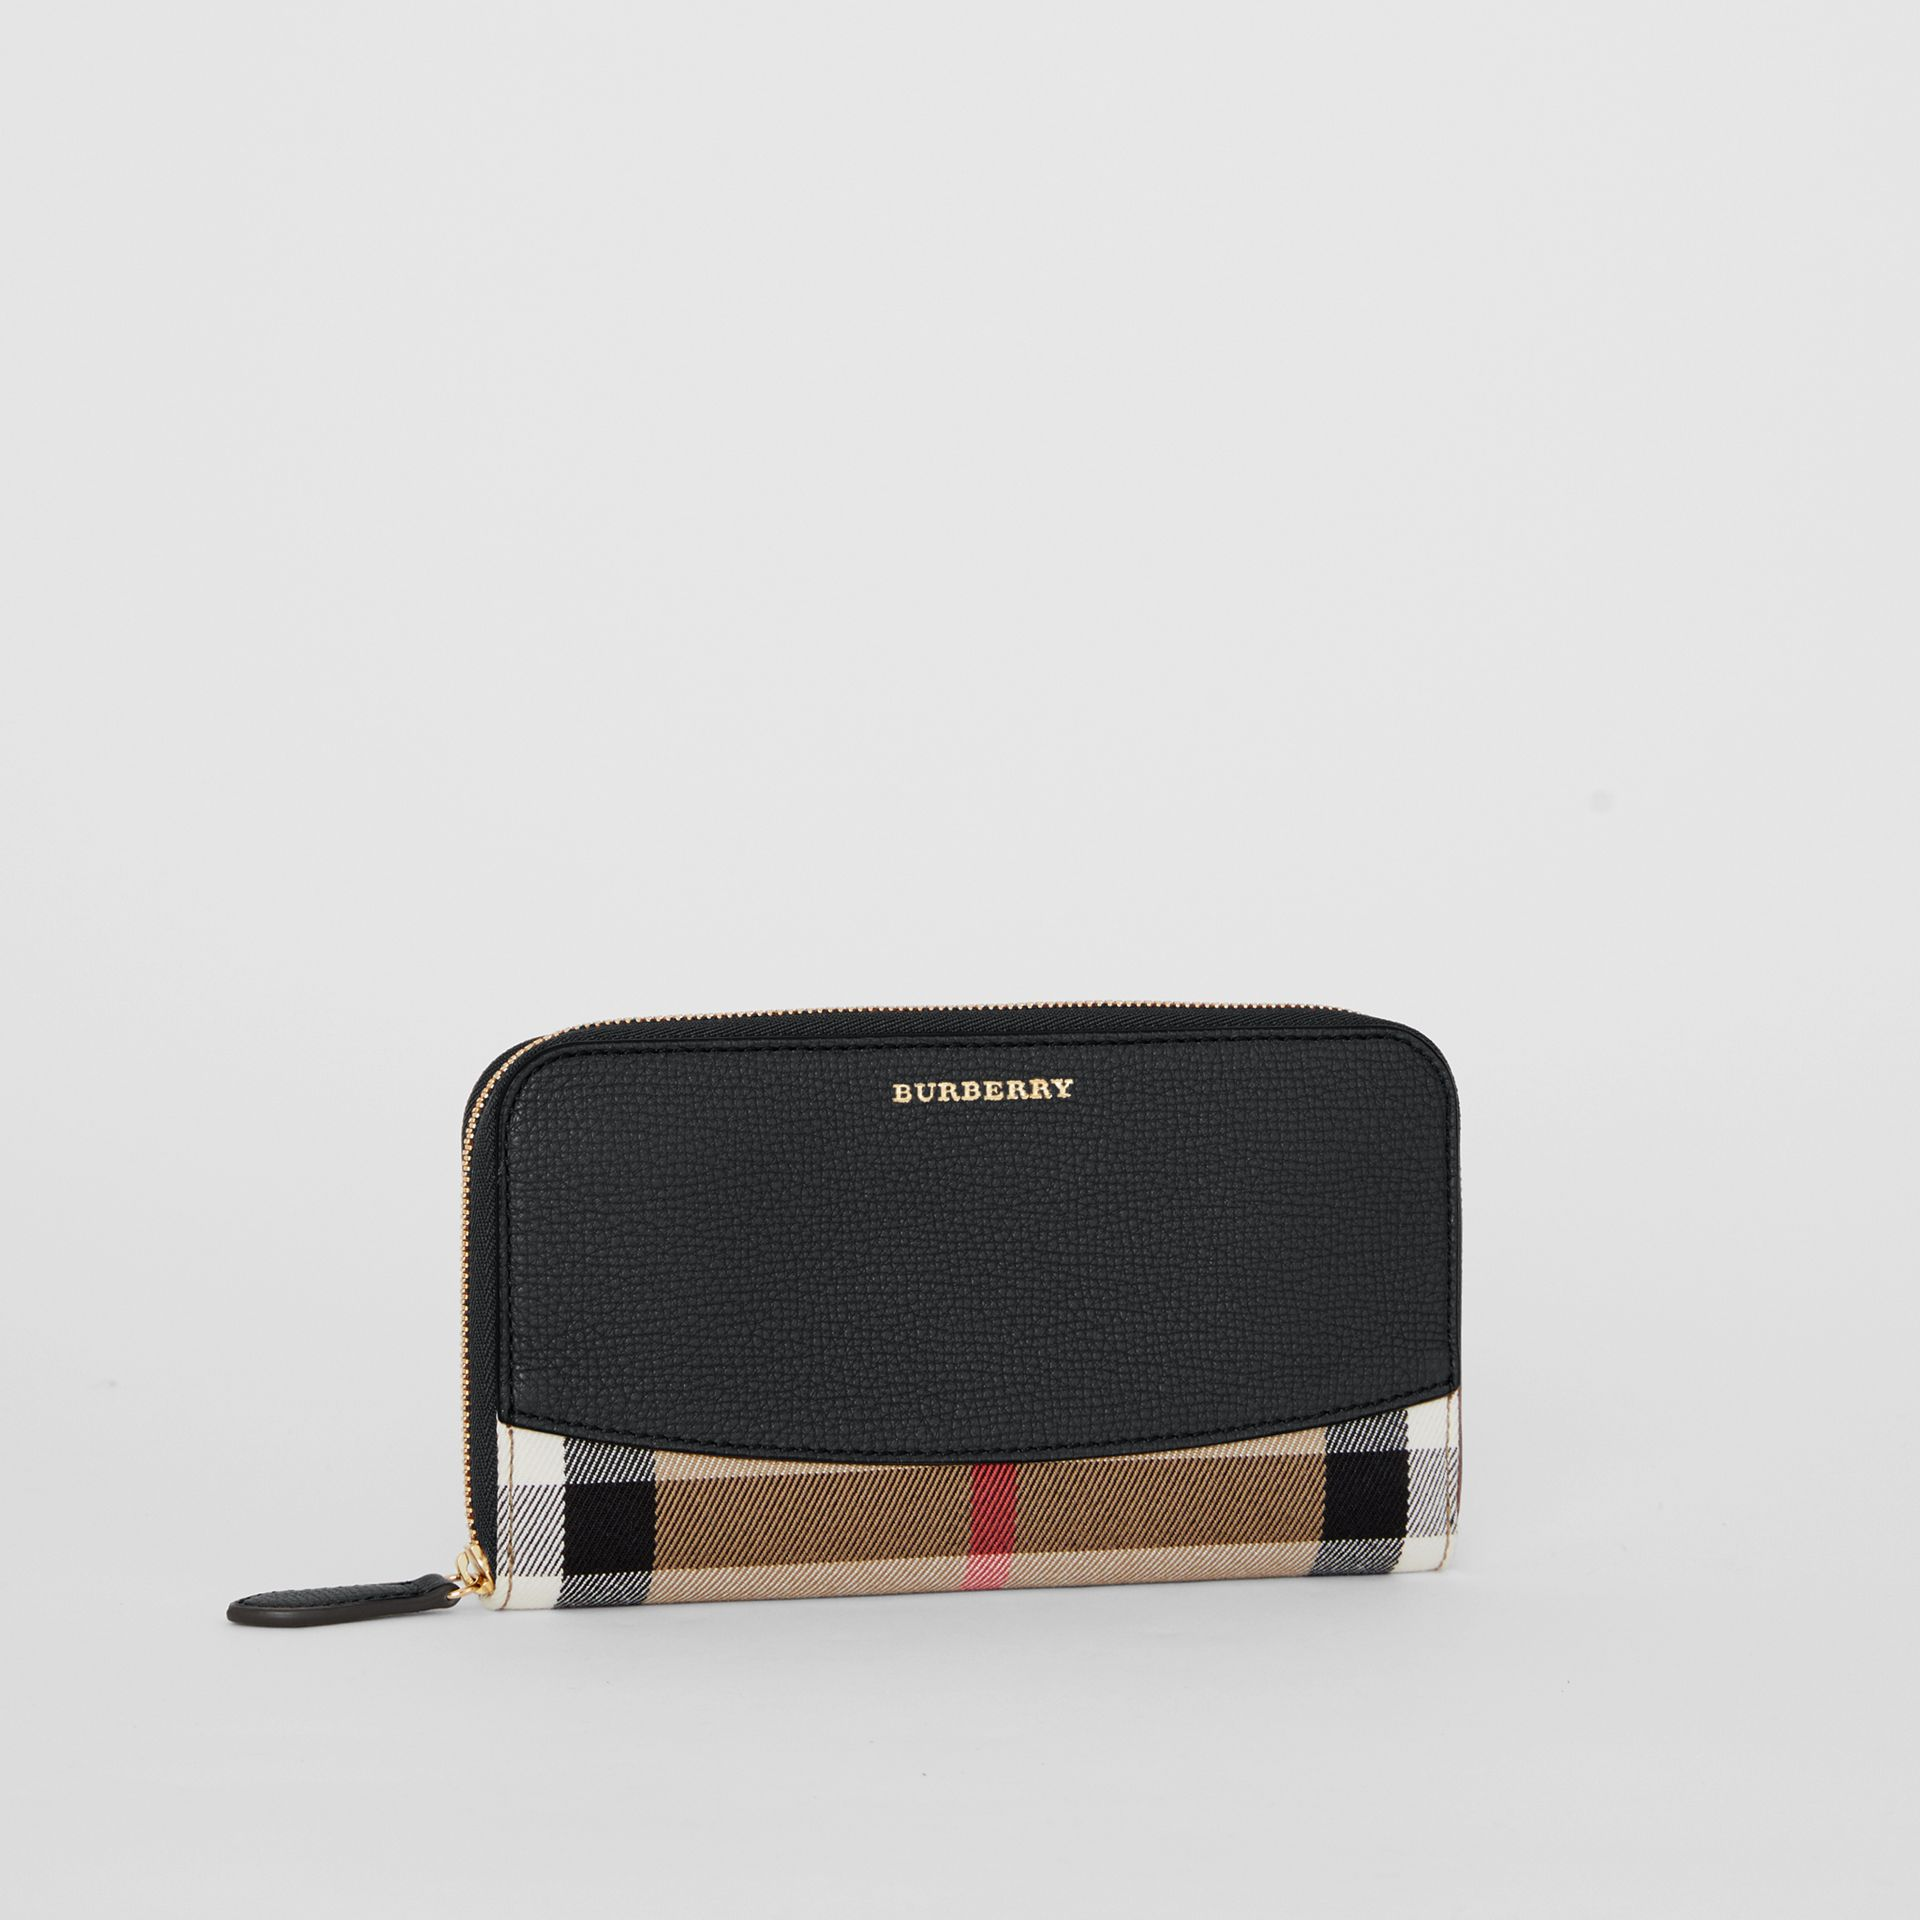 House Check and Leather Ziparound Wallet in Black - Women | Burberry - gallery image 4